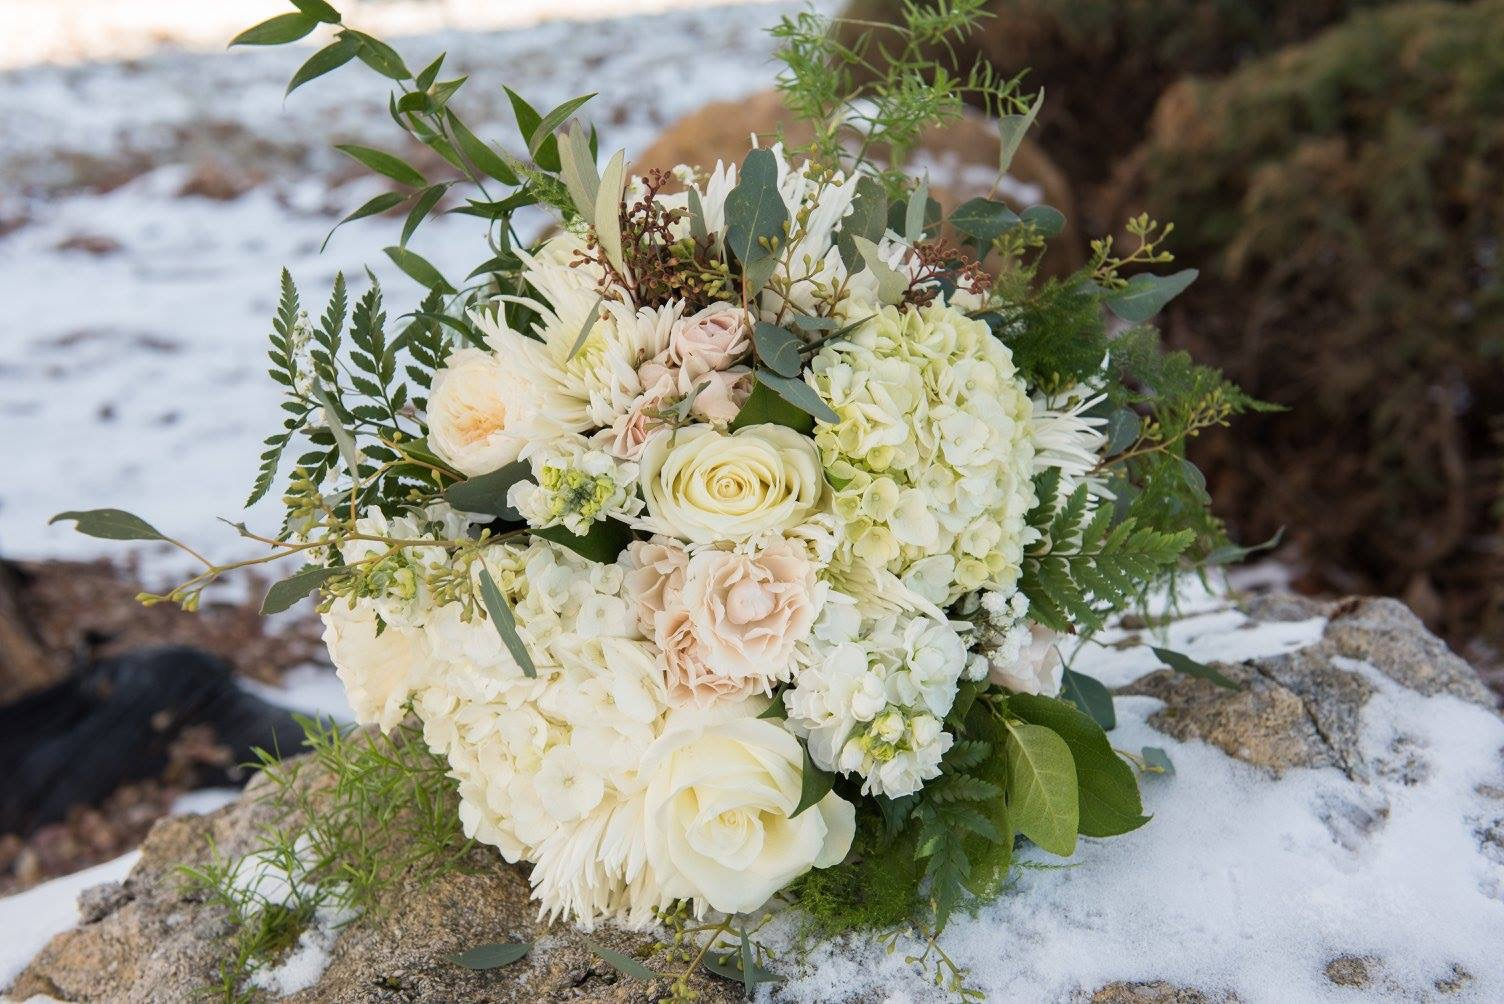 Snowy day with blush and cream flowers